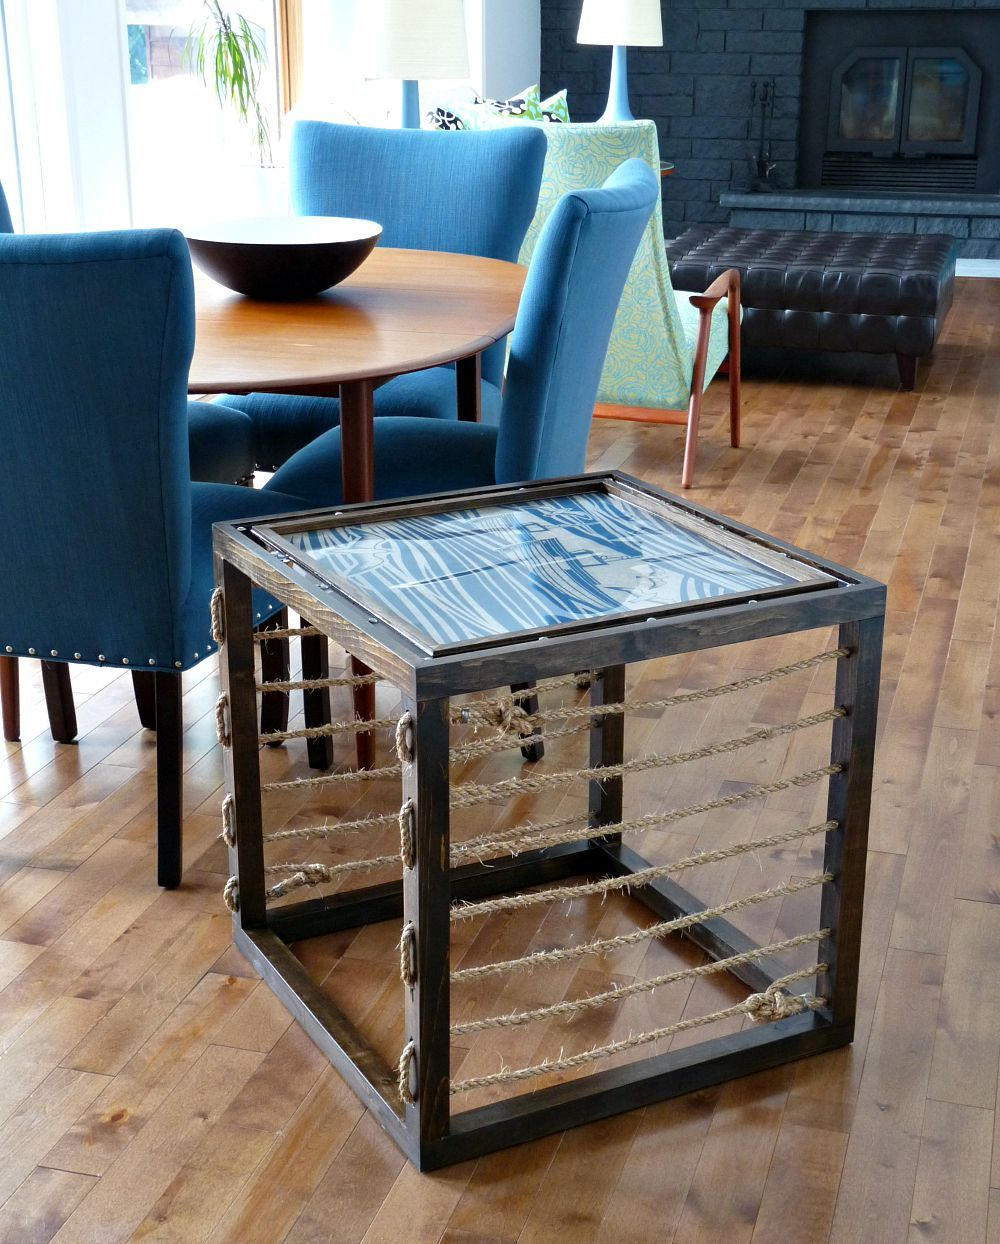 Simple accent coffee table featuring rope